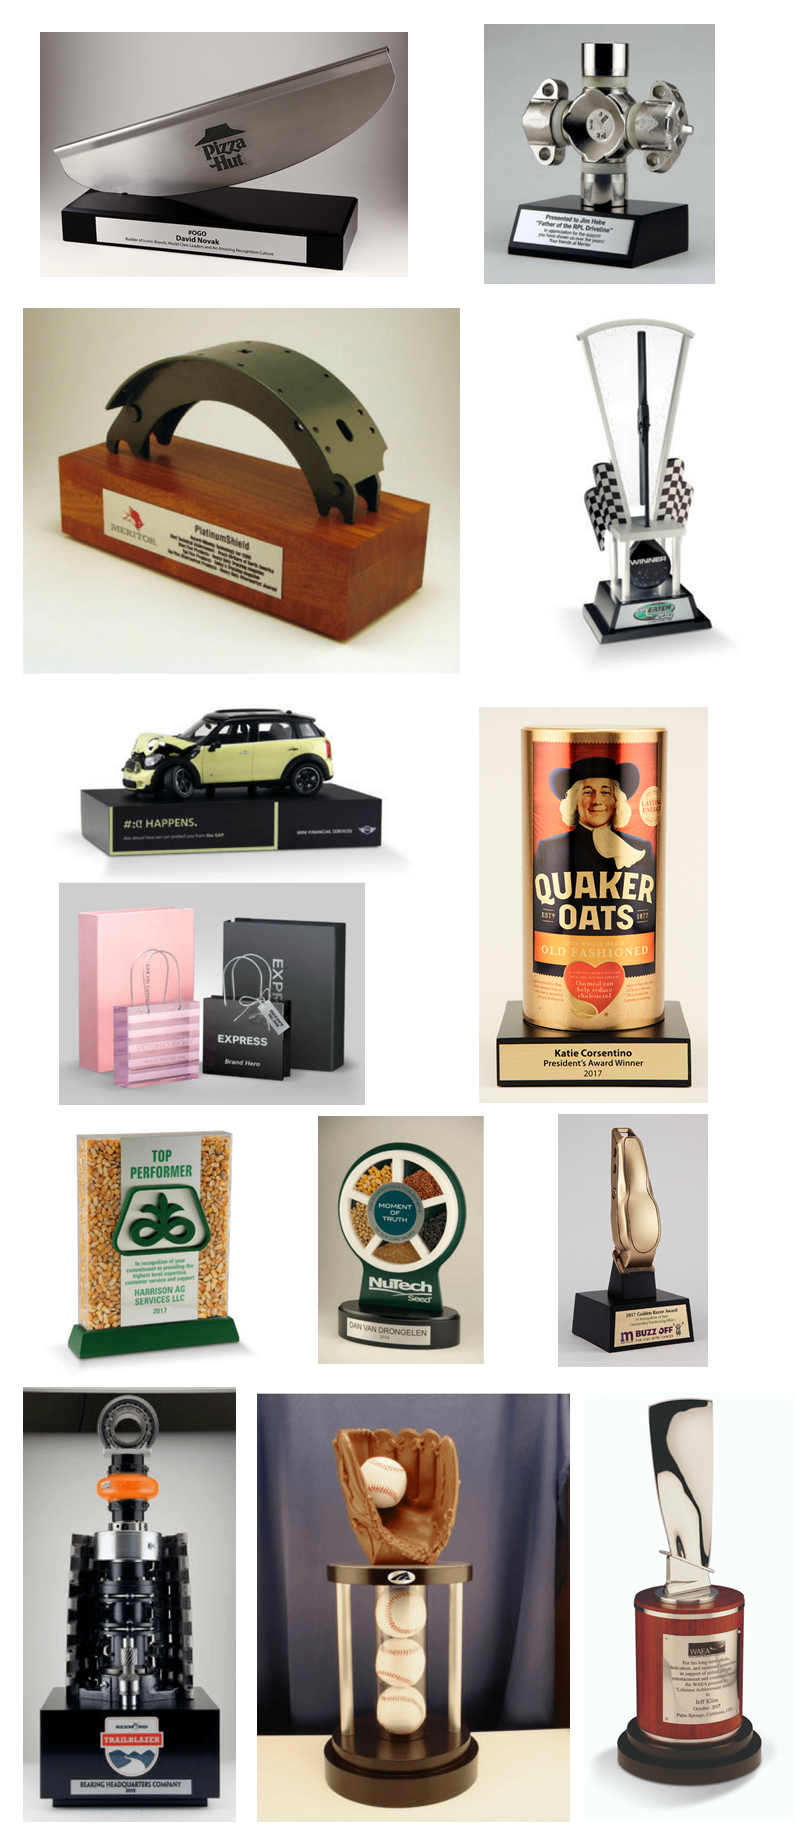 Incorporating Real Products into Awards